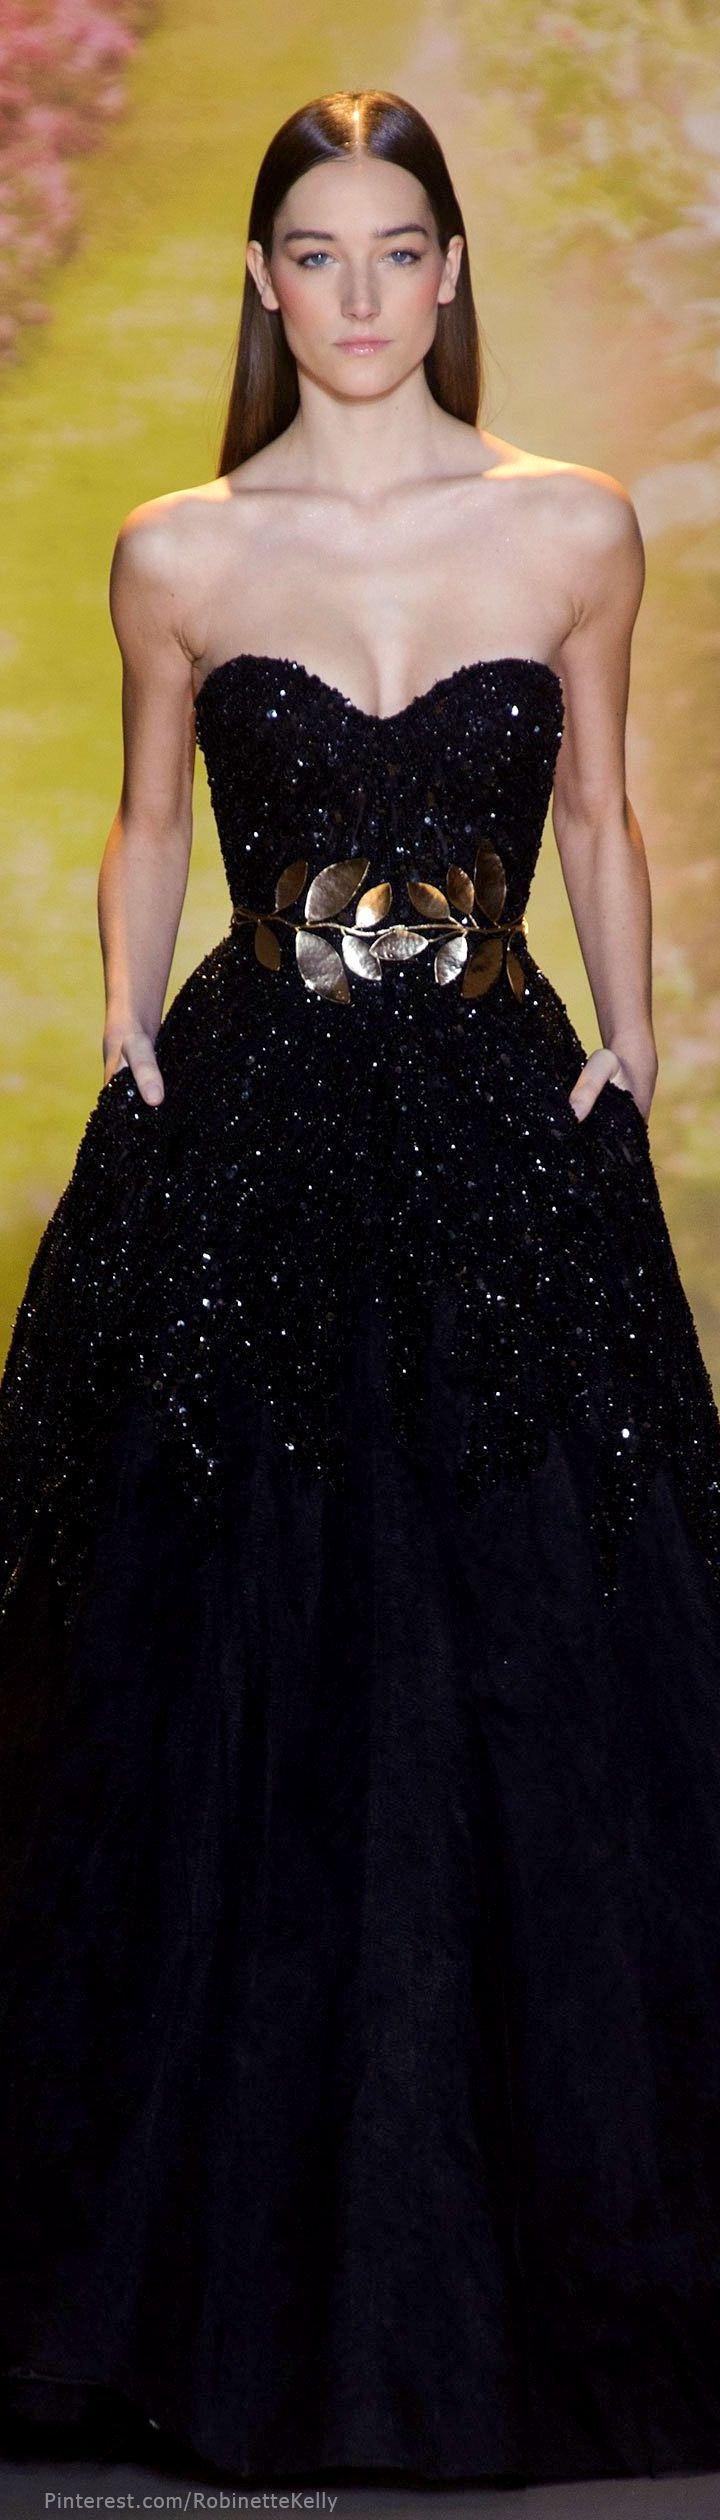 "Zuhair Murad Haute Couture | S/S 2014  (^.^) Thanks, Pinterest Pinners, for stopping by, viewing, re-pinning,  following my boards.  Have a beautiful day! ^..^ and ""Feel free to share on Pinterest ^..^  #women #topfashion #fashionandclothingblog"